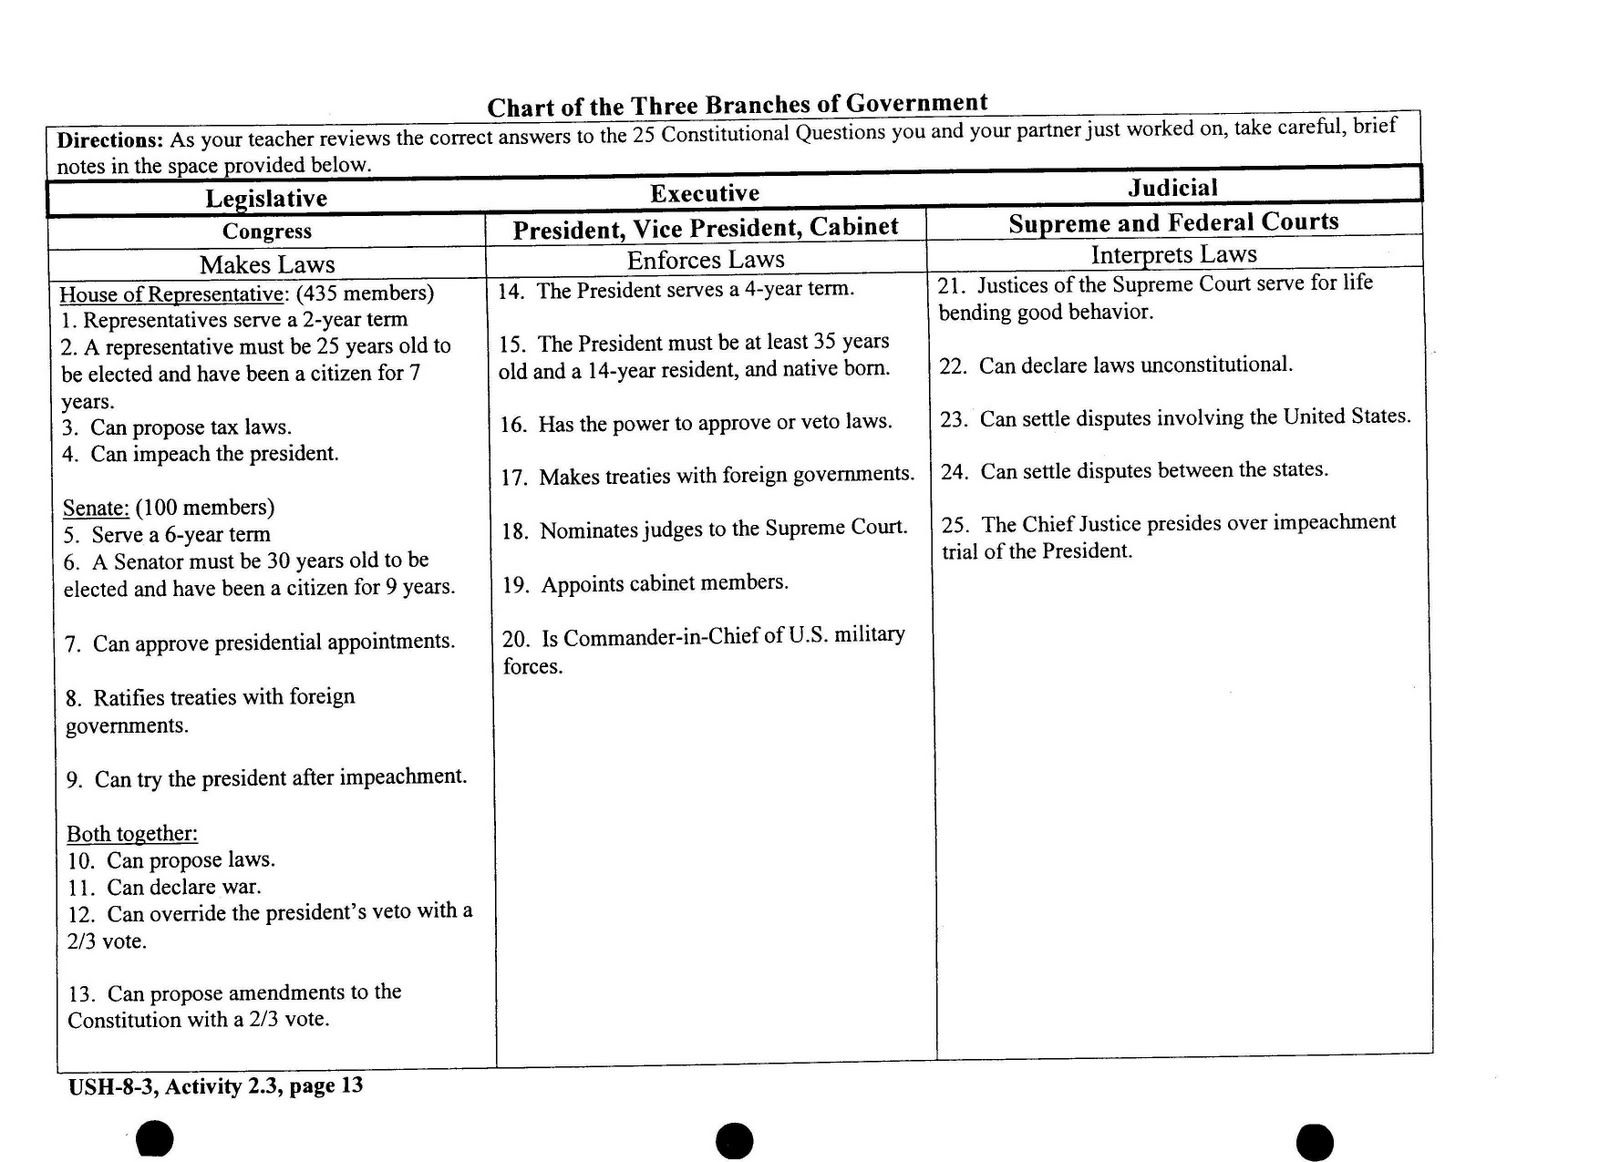 worksheet Seven Principles Of Government Worksheet Answers three branches of government worksheet gms 6th grade social studies chart and